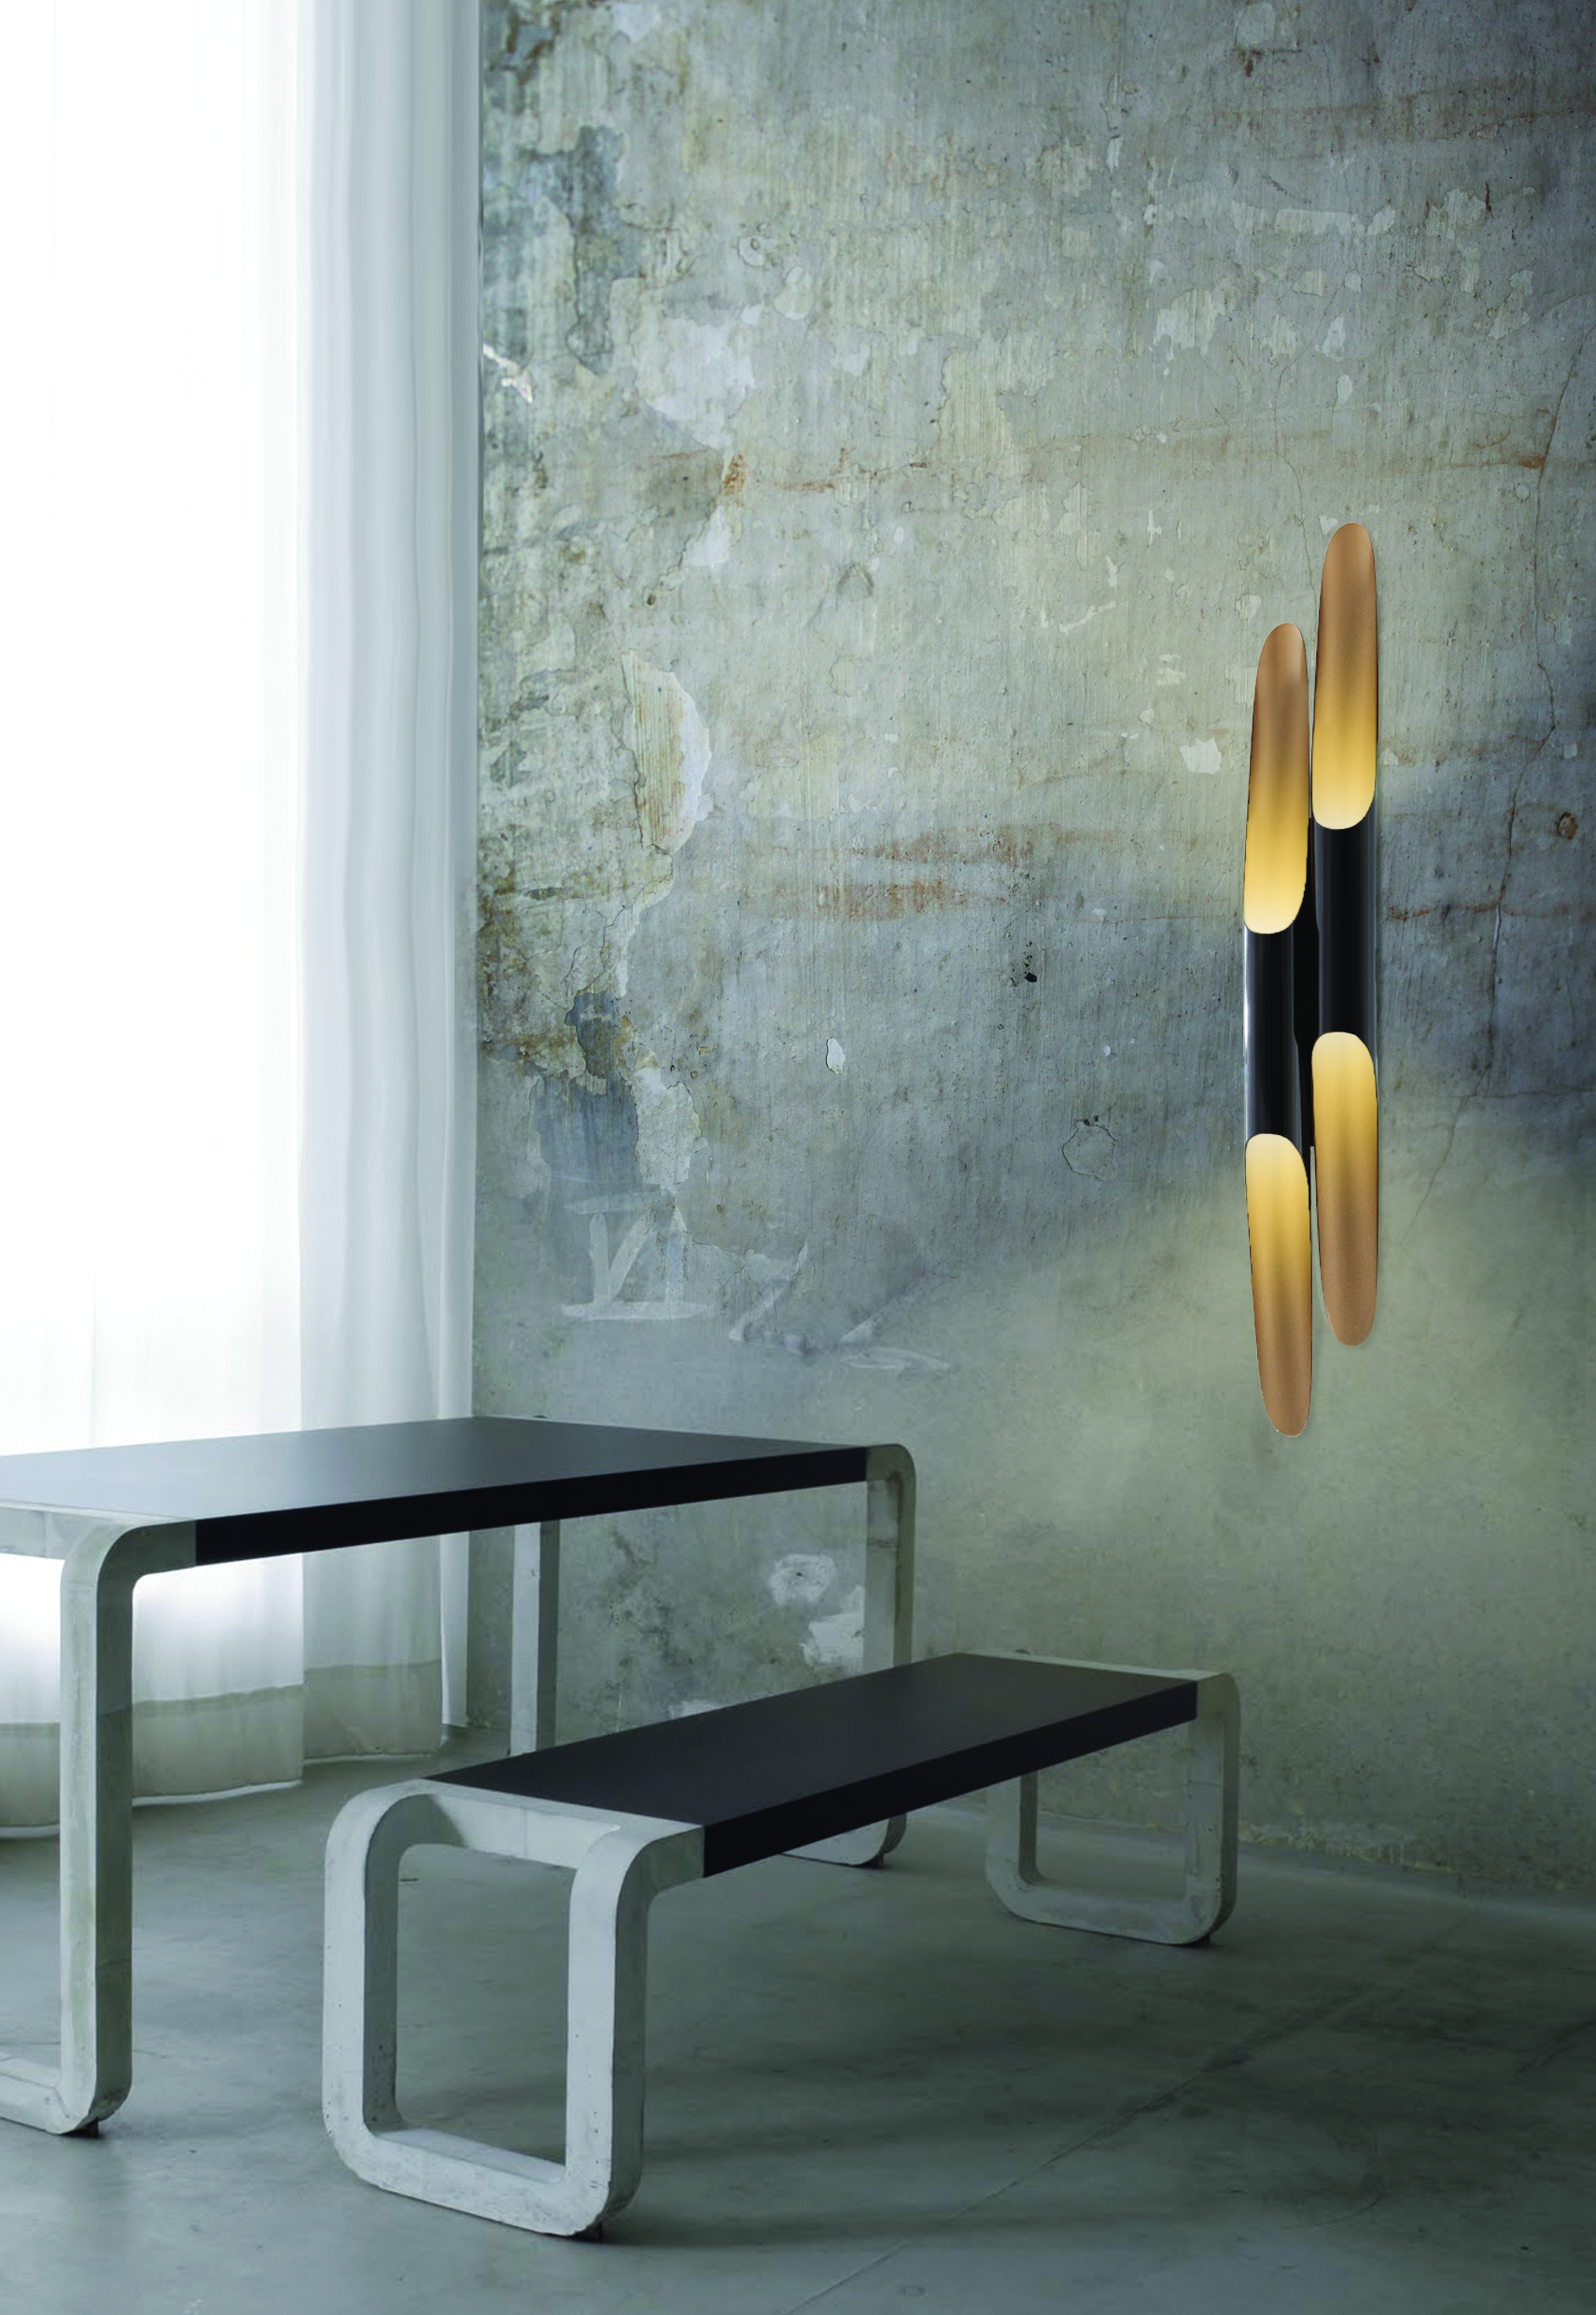 contemporary lighting pieces contemporary lighting pieces Get An Industrial Living Room With These Contemporary Lighting Pieces! Get The Industrial Living Room Look With These Contemporary Lighting Pieces 6